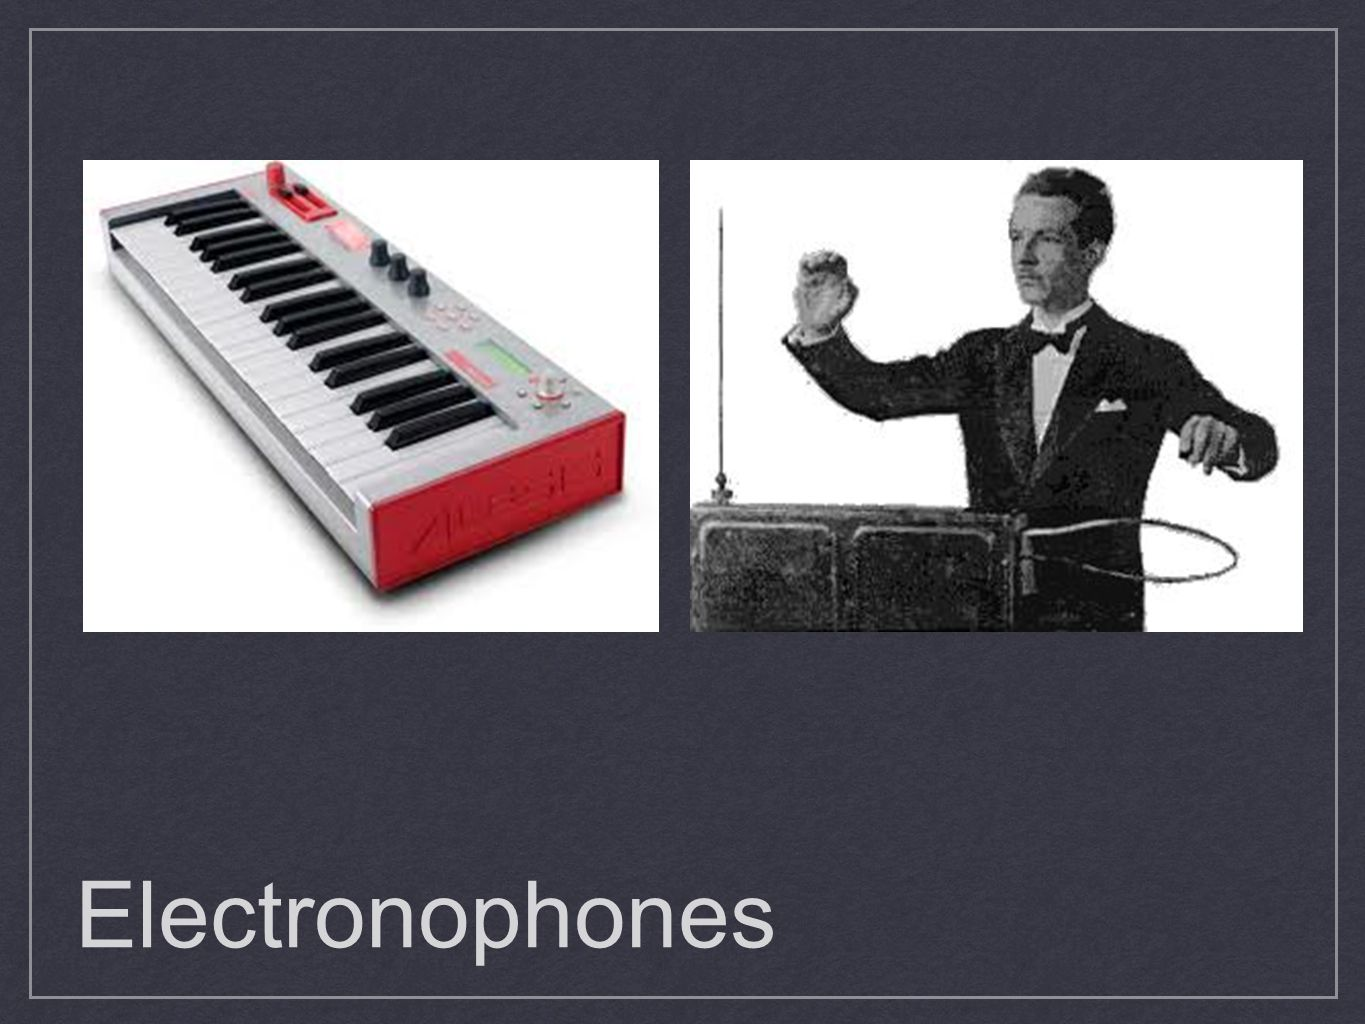 http://www.youtube.com/watch v=hUJagb7hL0E Electronophones